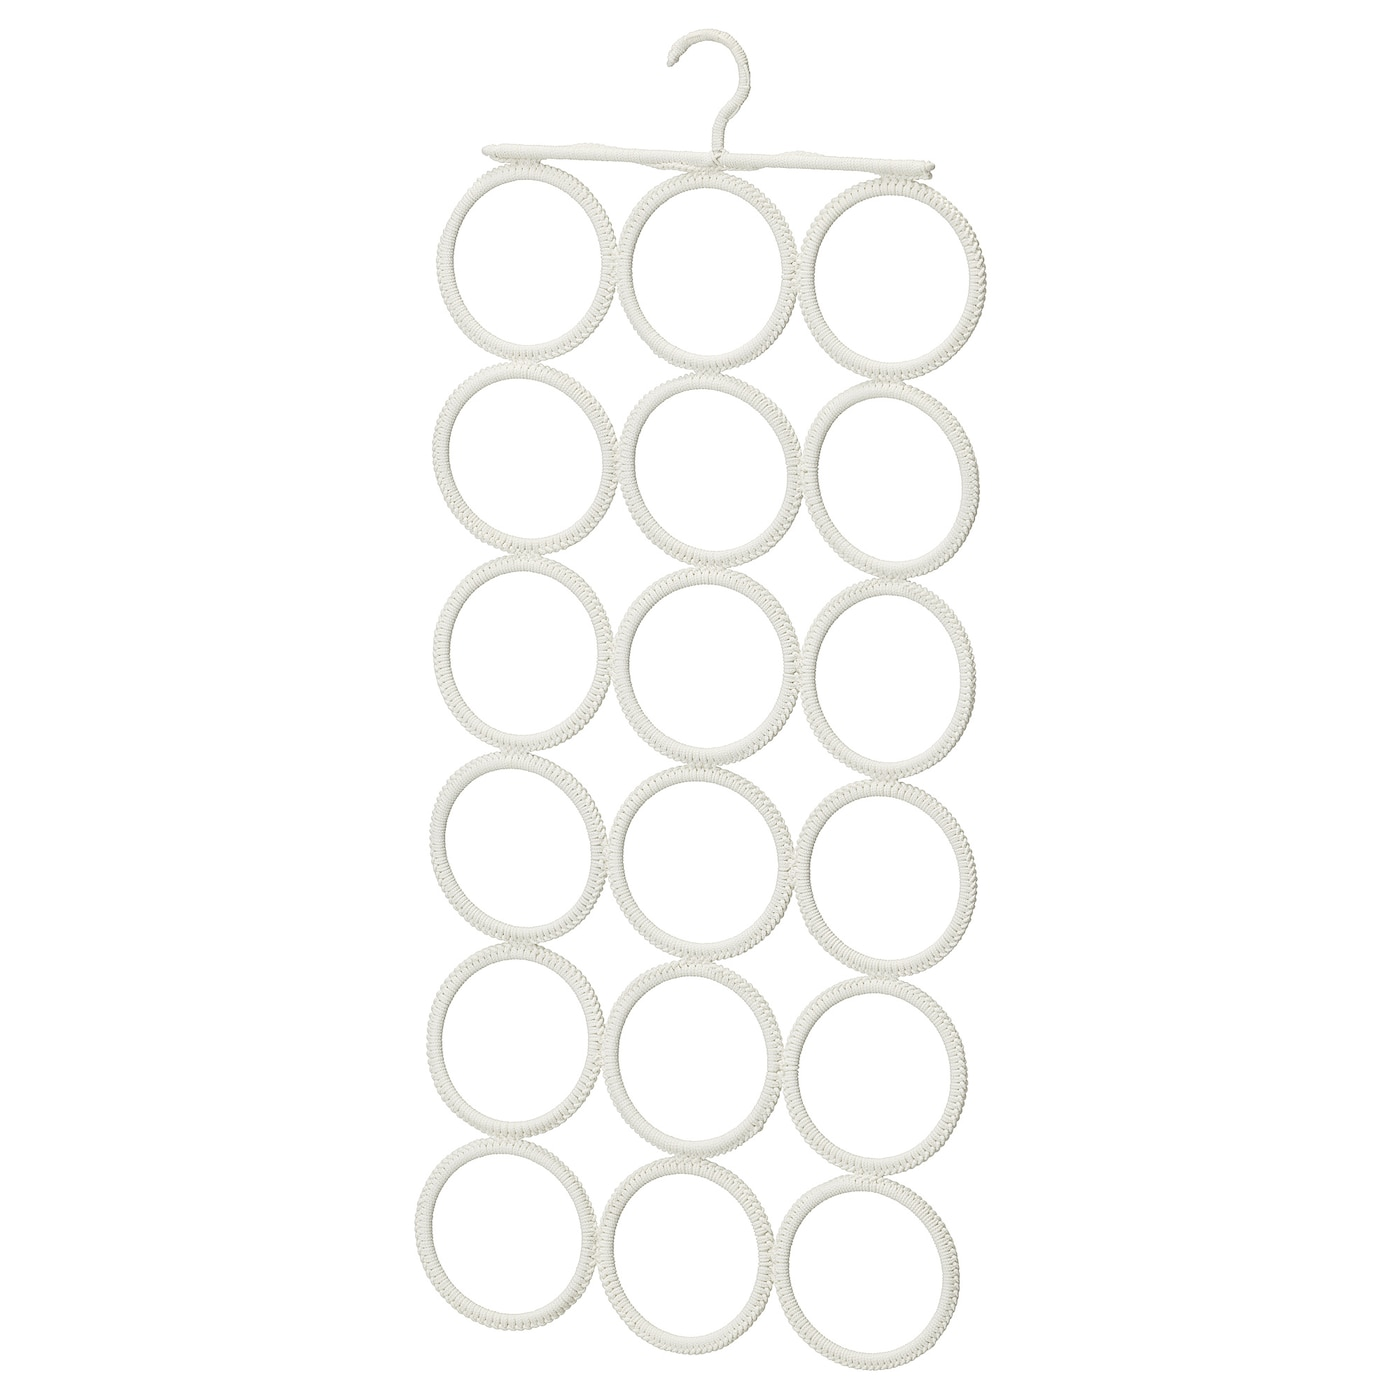 IKEA KOMPLEMENT multi-use hanger Can also be used in bathrooms and other damp areas indoors.